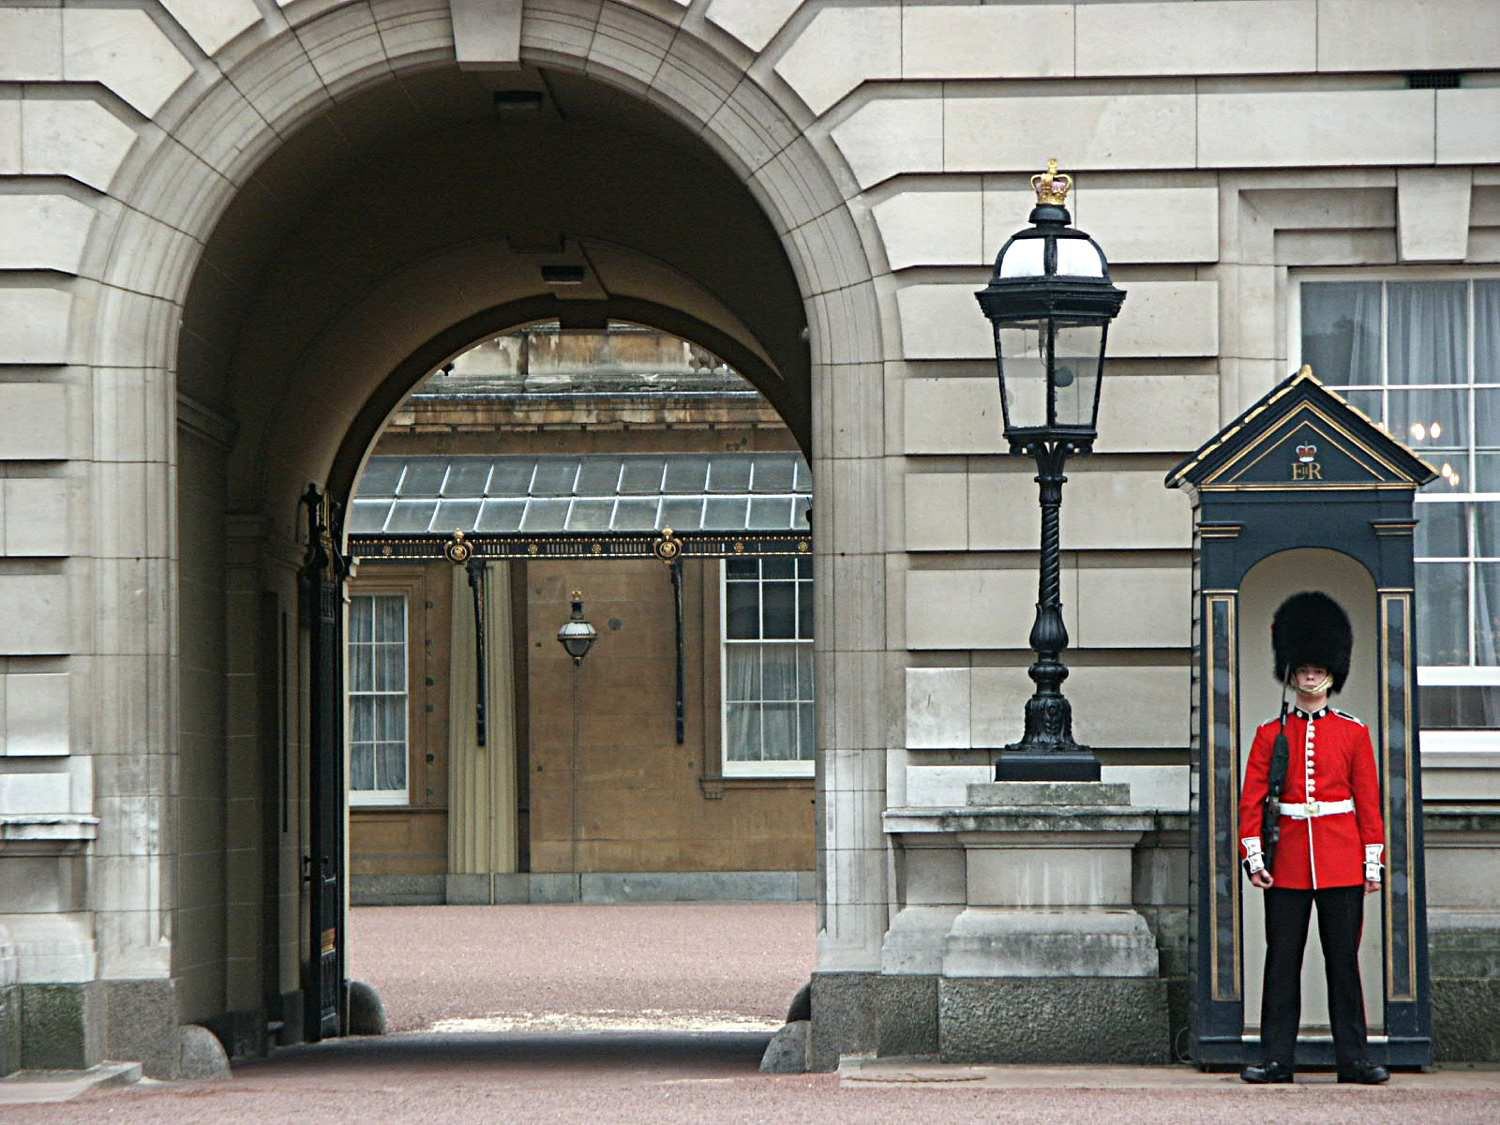 Buckingham Palace Visitor Information